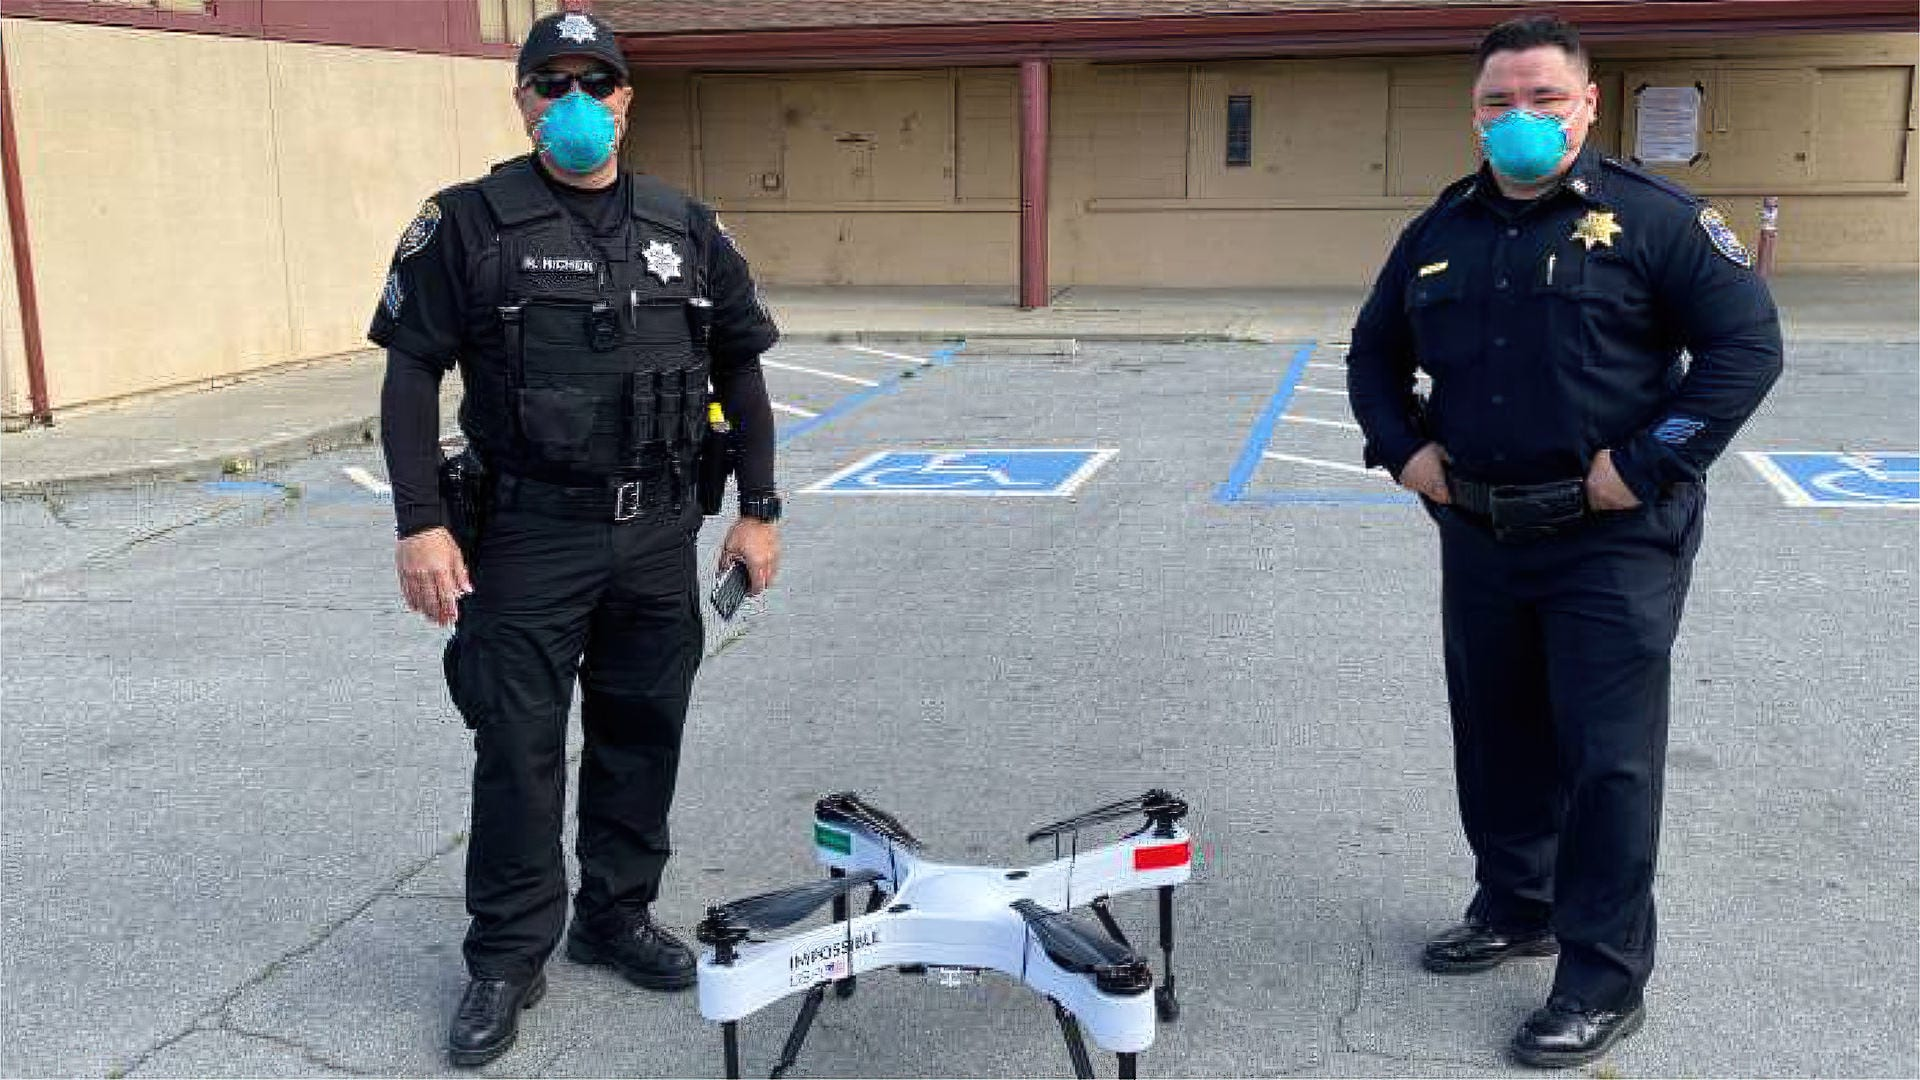 US-1 from Impossible Aerospace used in 'homeless outreach' drone program